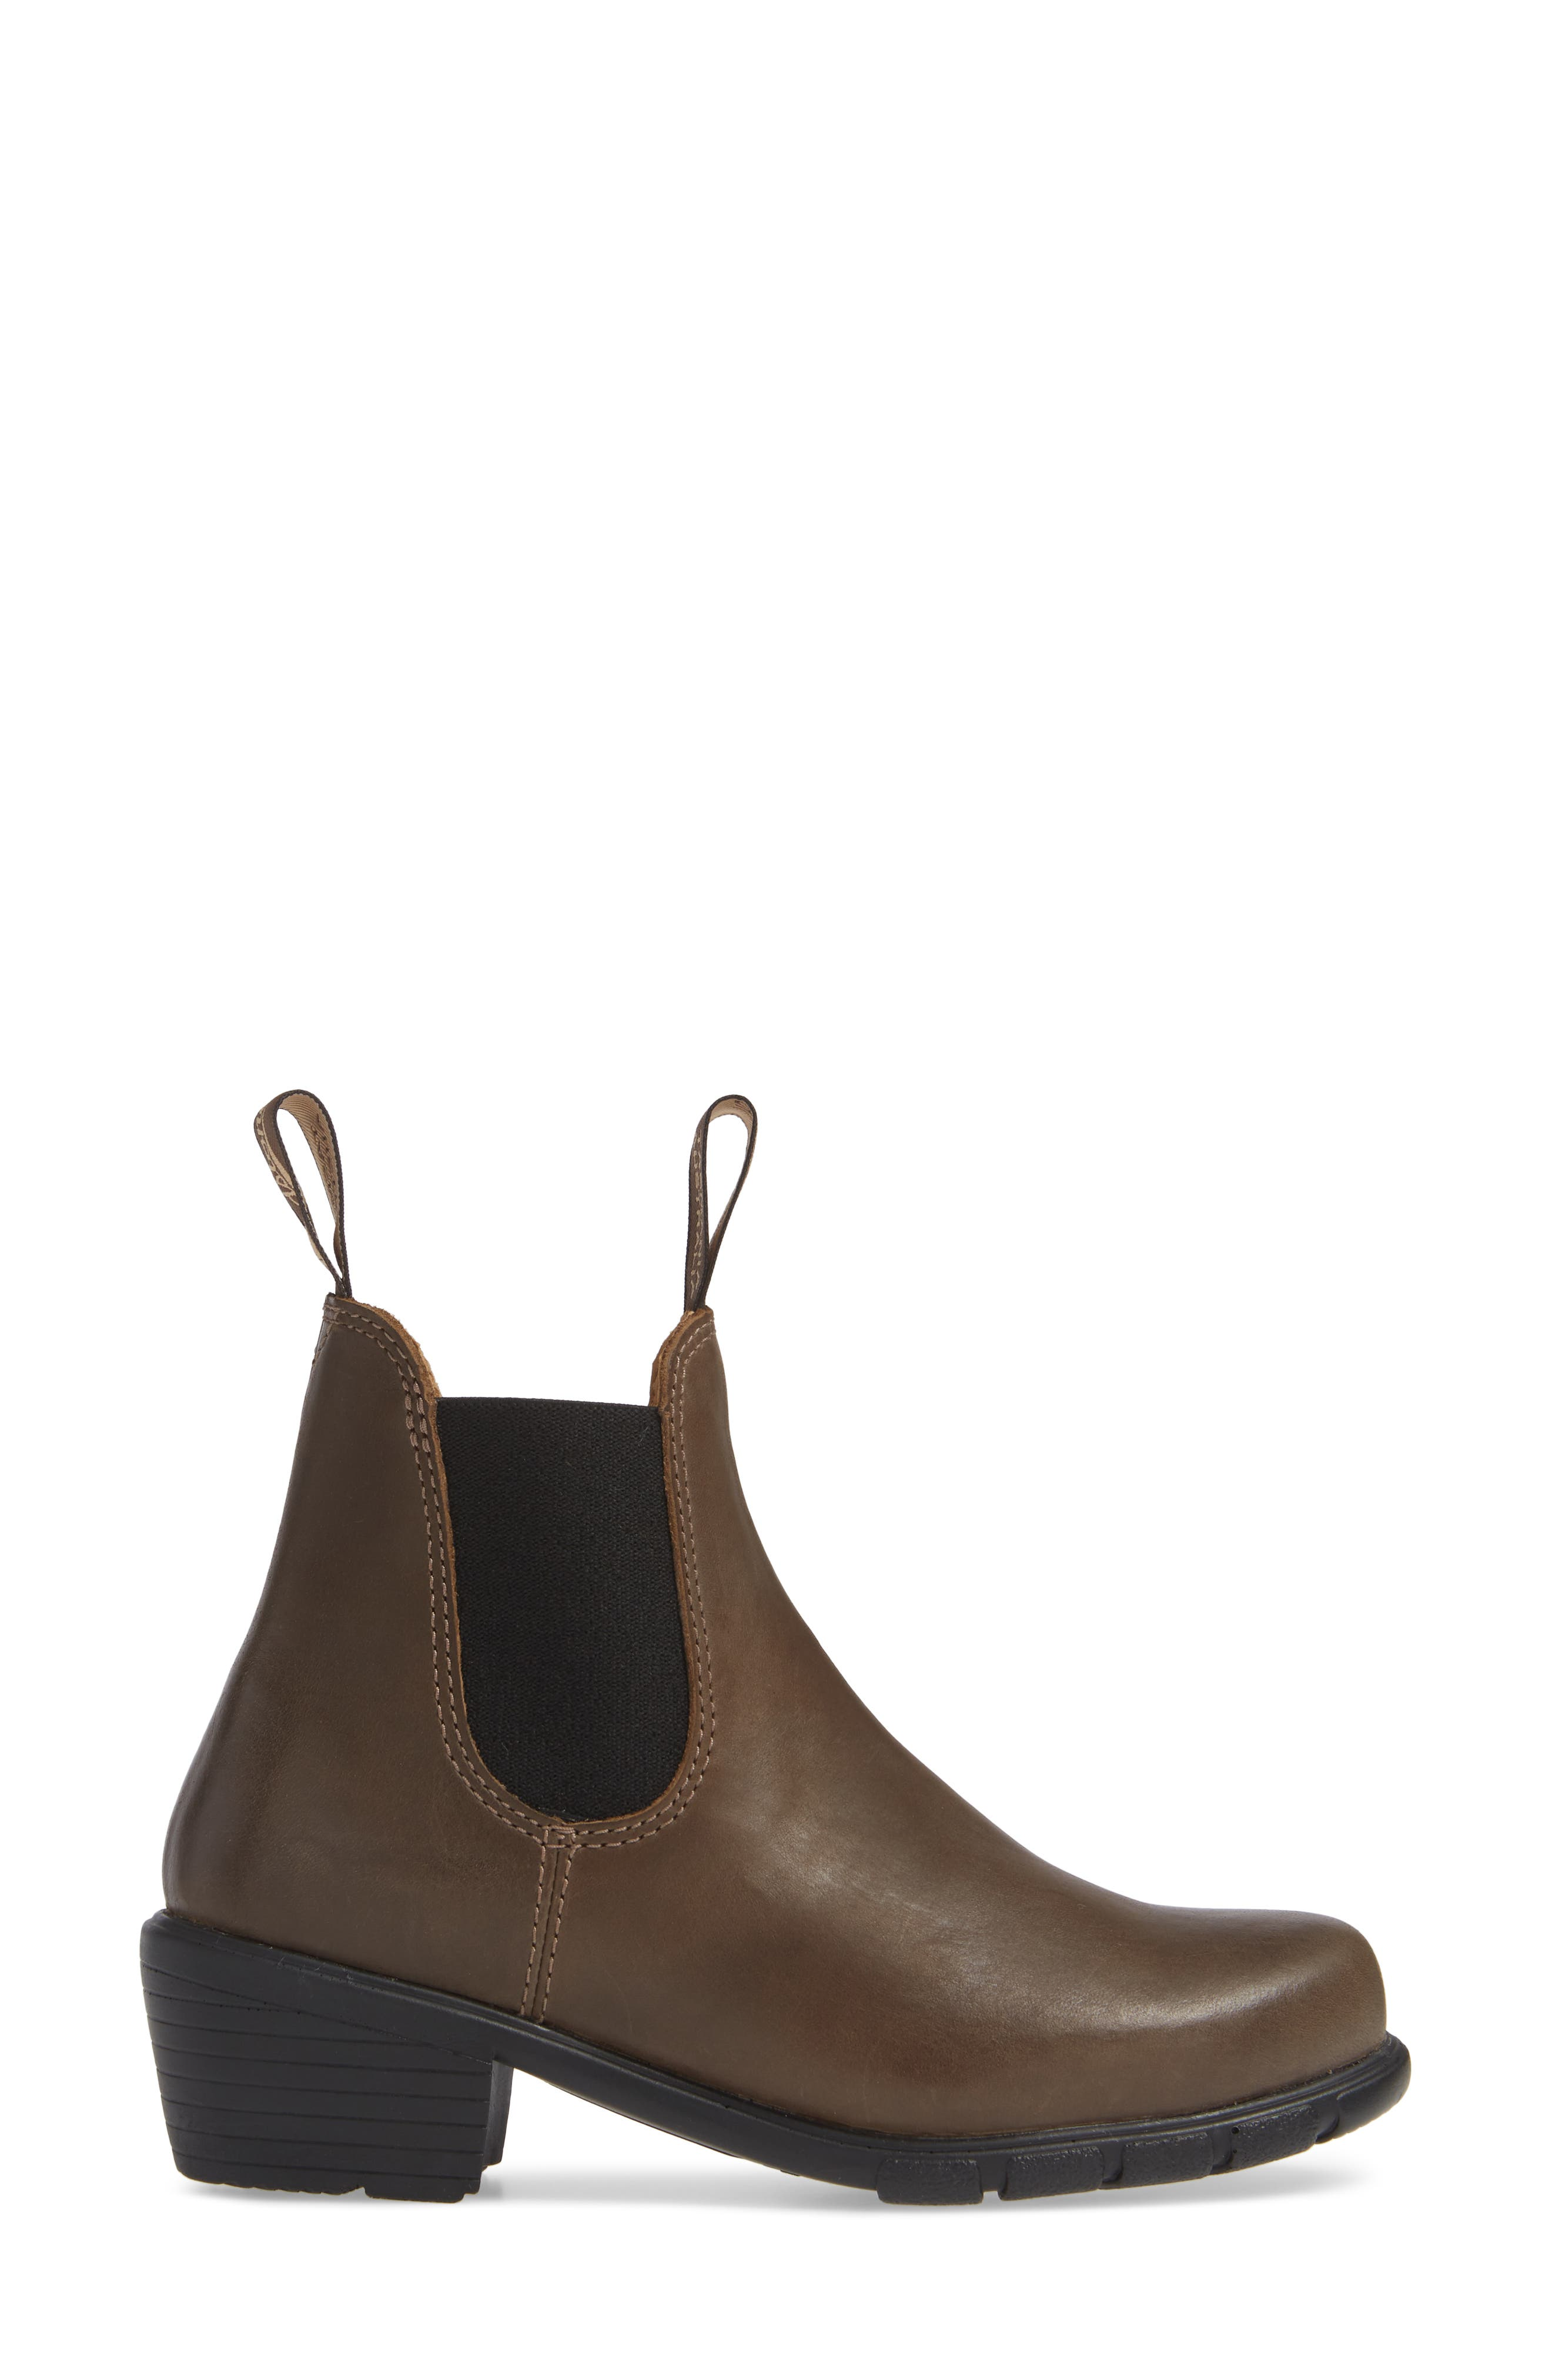 BLUNDSTONE FOOTWEAR, Blundstone 1671 Chelsea Boot, Alternate thumbnail 3, color, ANTIQUE TAUPE LEATHER